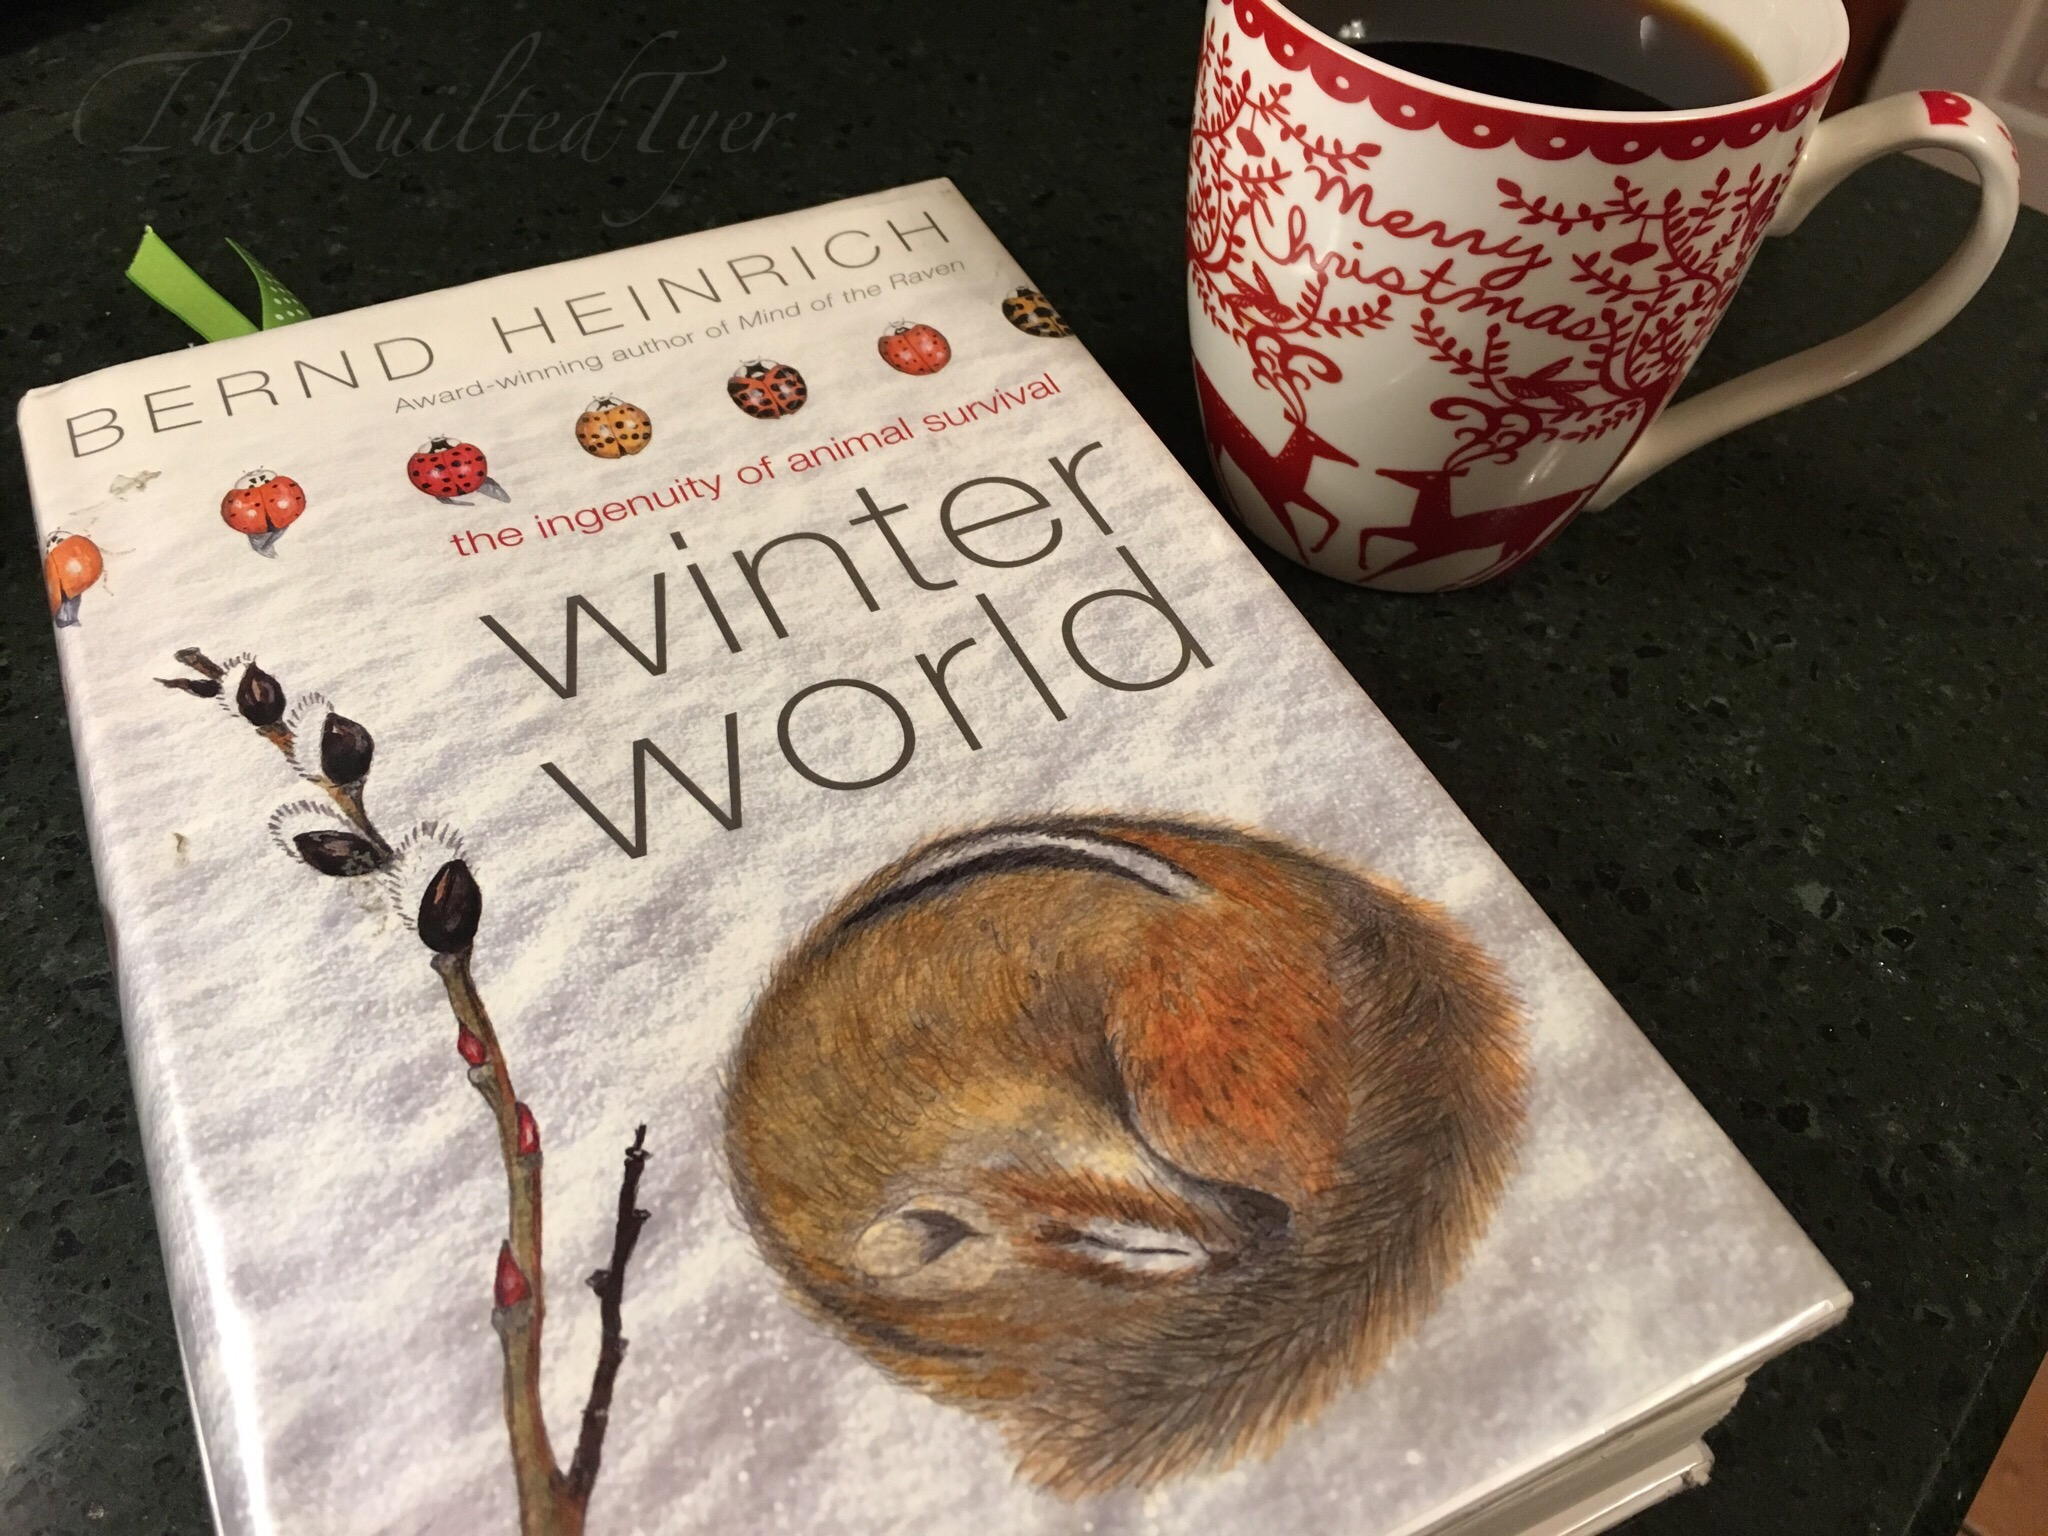 https://thequiltedtyer.wordpress.com/a-little-bit-of-everything-else/book-reviews/winter-world-the-ingenuity-of-animal-survival